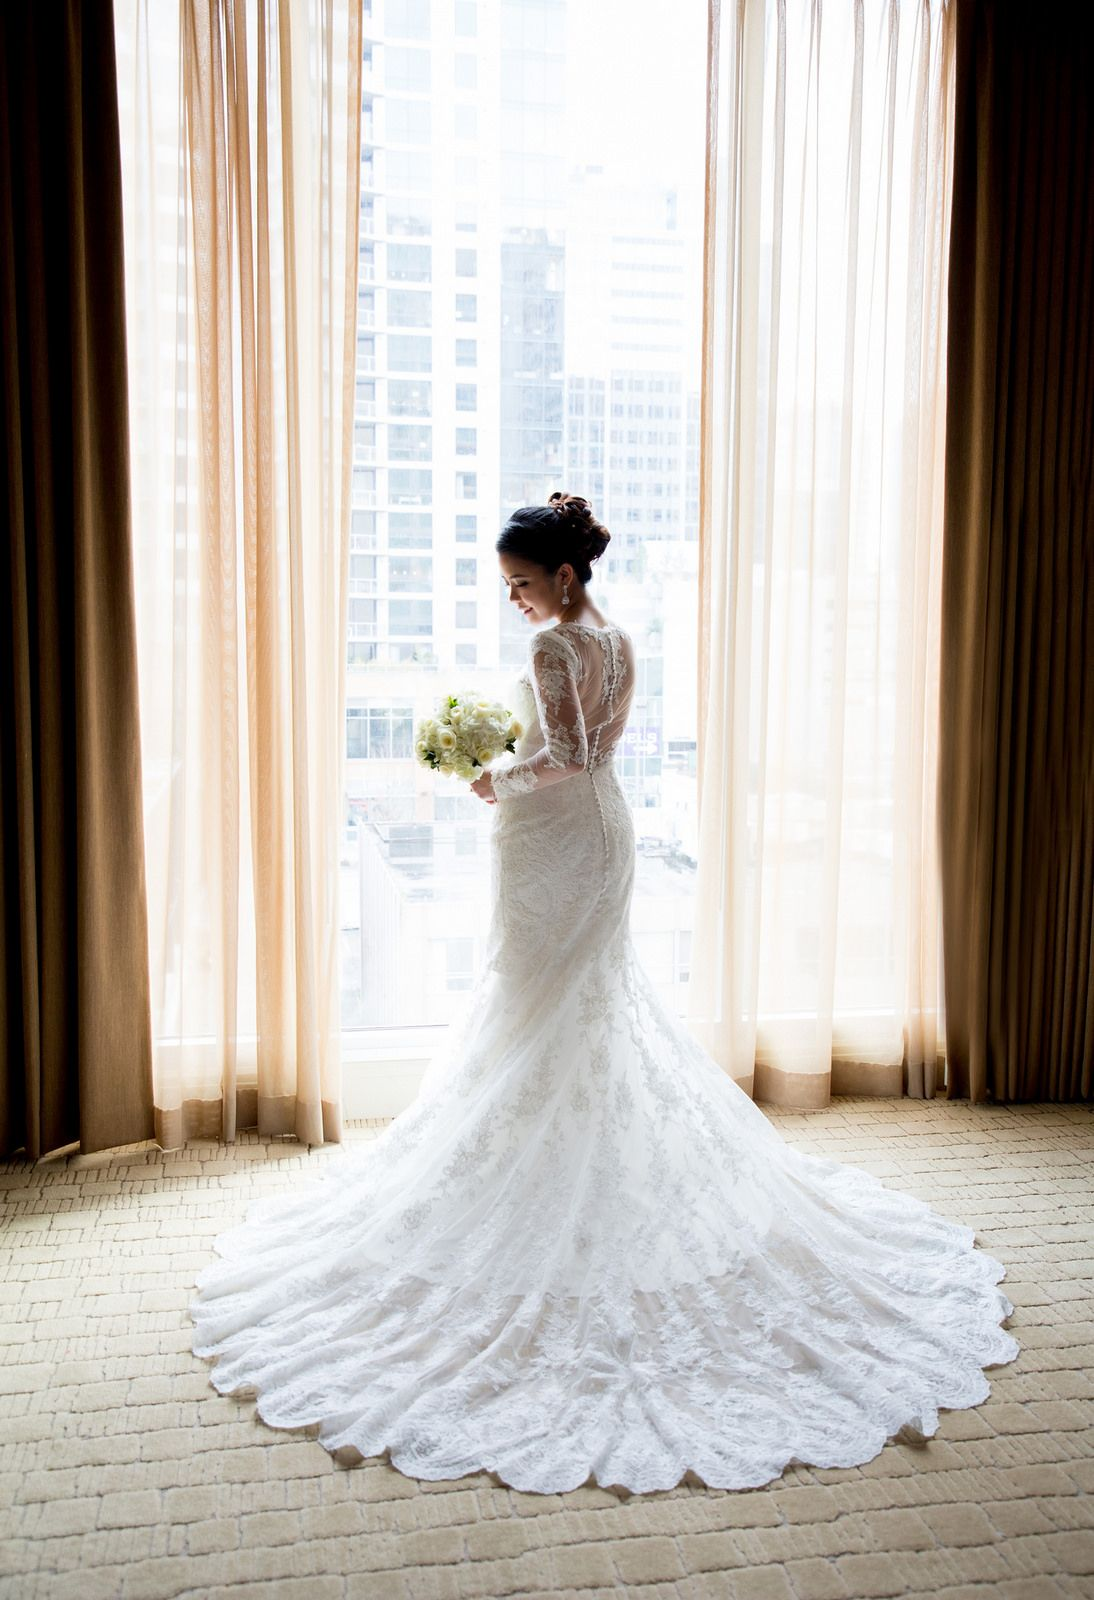 Lovely Lace Wedding Dress With Train And Long Sleeves Essence Of Australia Hyatt Hotel